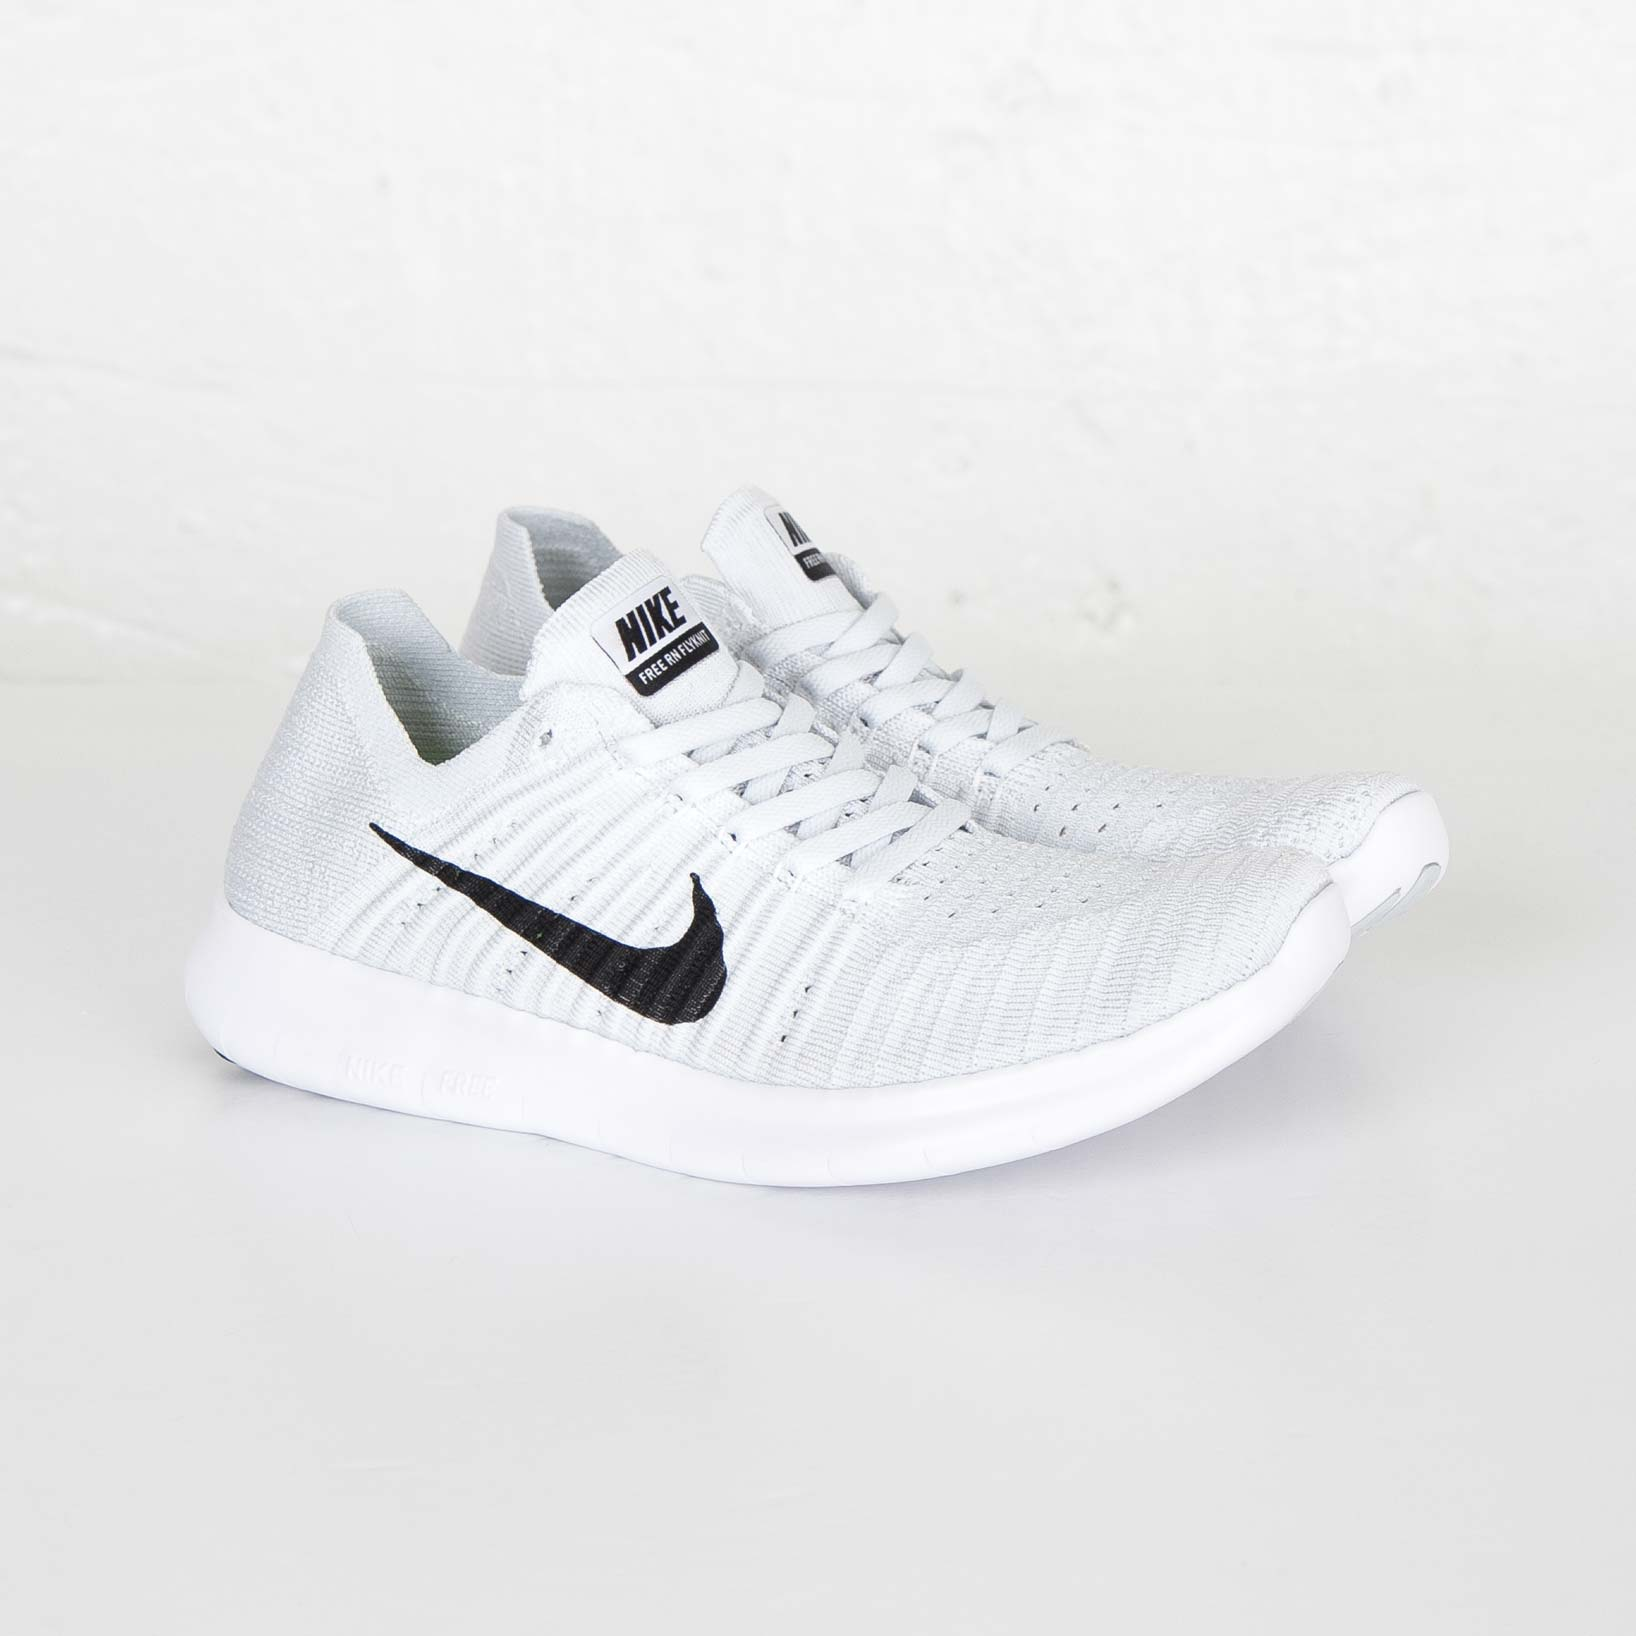 detailed look 5ae7a 0d2e2 Nike Wmns Free RN Flyknit - 831070-101 - Sneakersnstuff ...